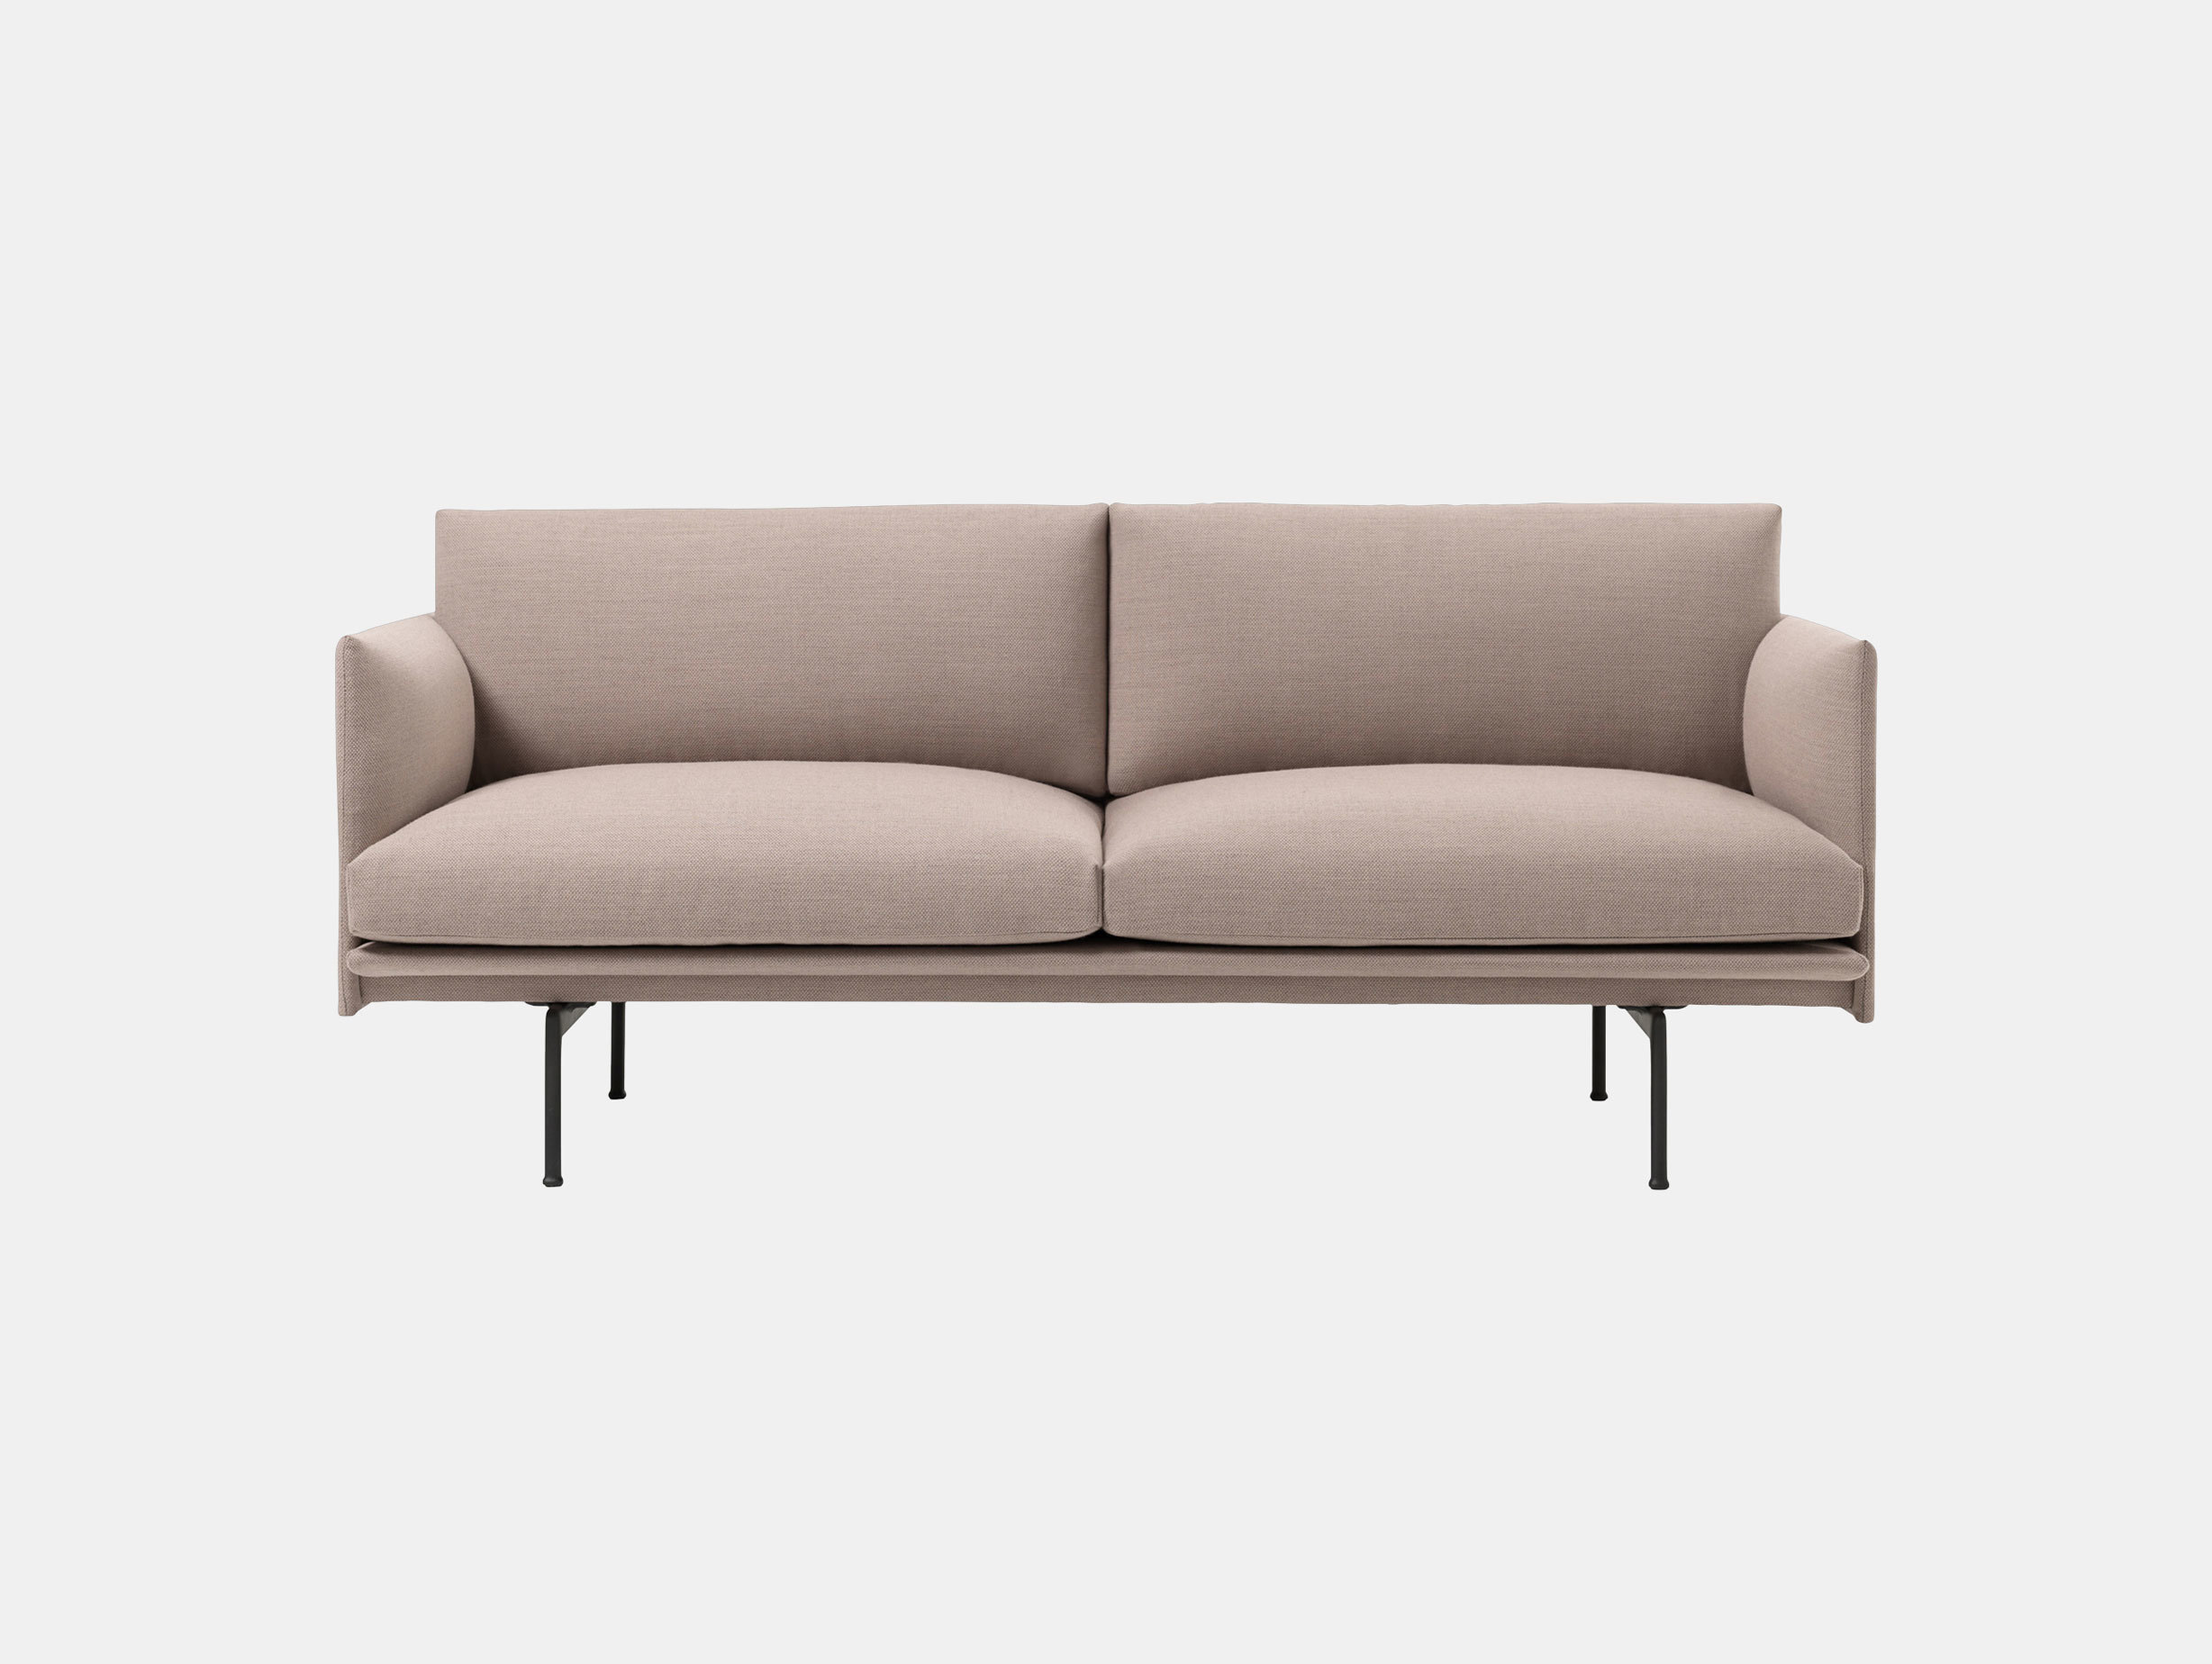 Outline Sofa image 1